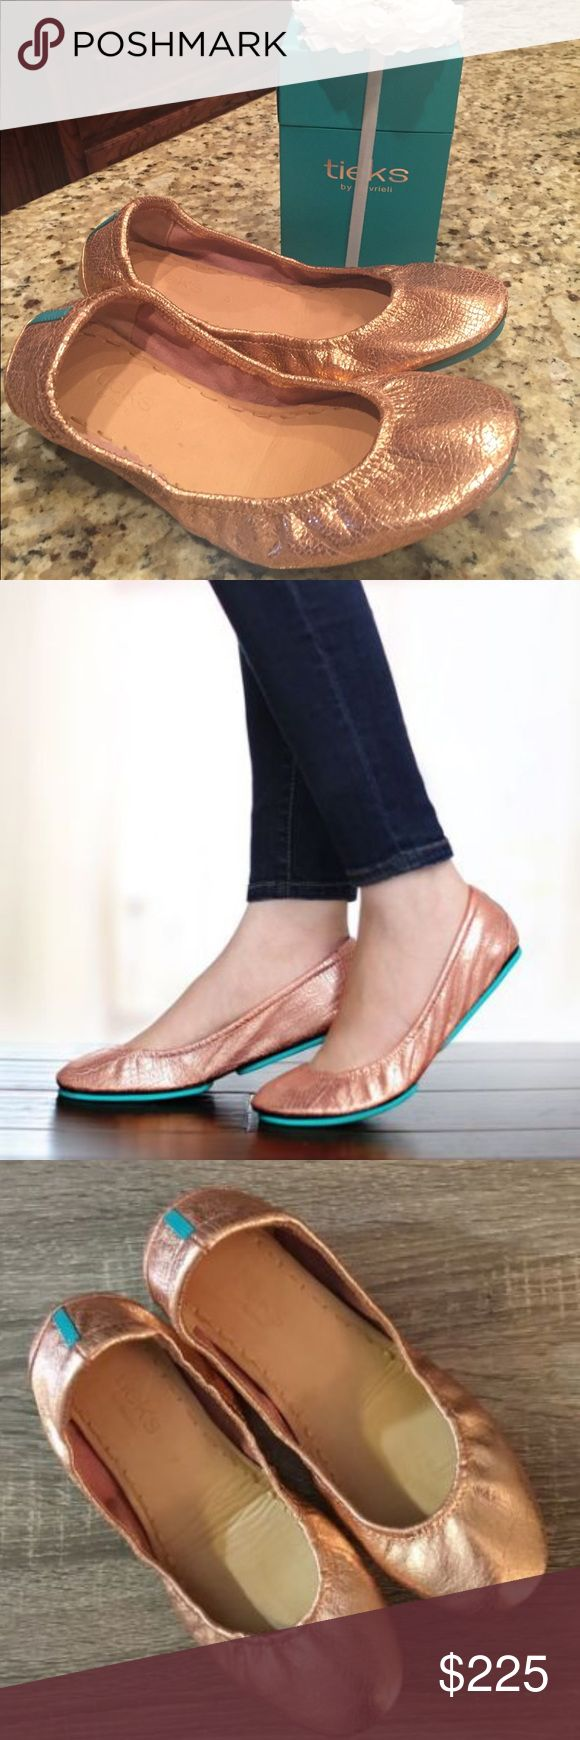 Rose Gold Glam Tieks--Brand new! Rose gold Tieks-brand new with box, flower, bag and pouch. Size 38. Tieks Shoes Flats & Loafers